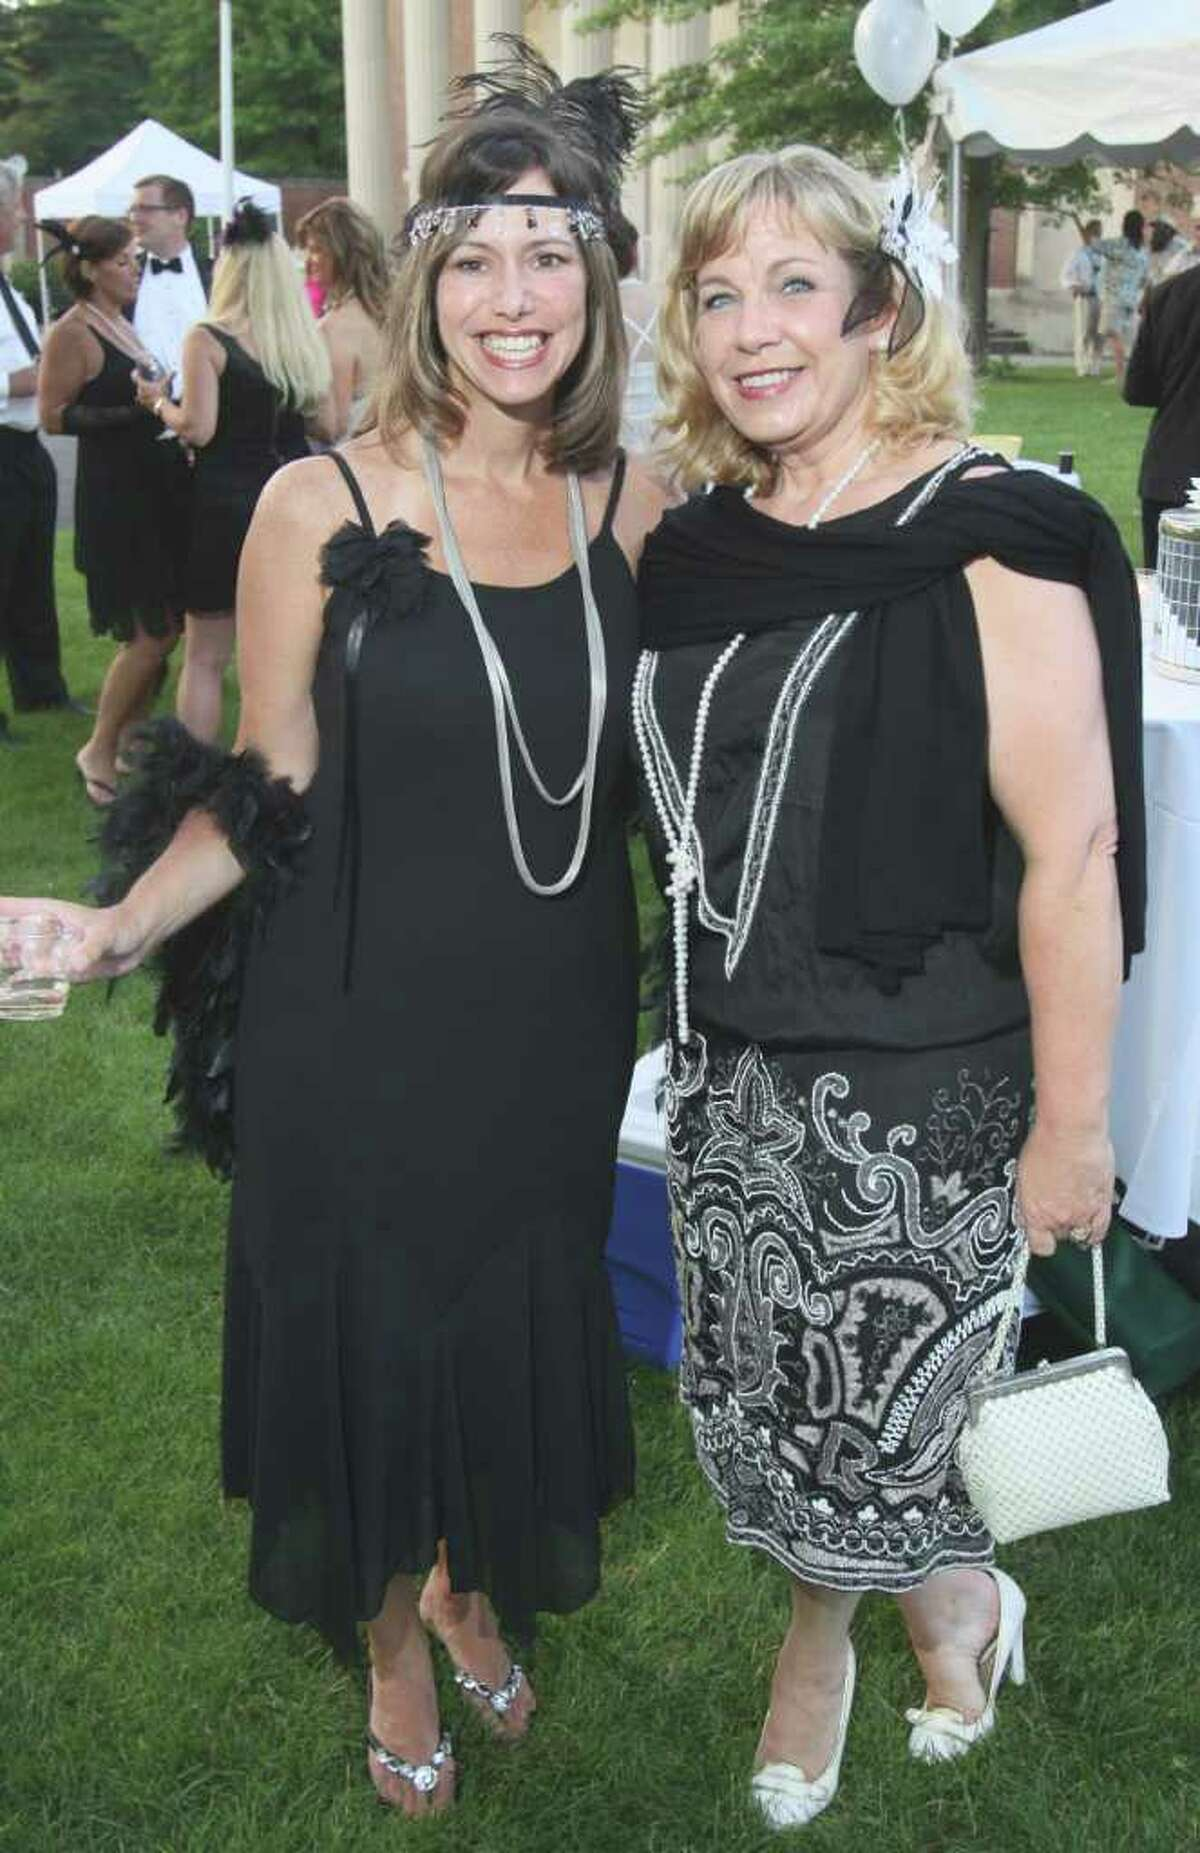 Saratoga Springs, NY - July 9, 2011 - (Photo by Joe Putrock/Special to the Times Union) - Tamie Ehinger(left) poses with Ivy Brockley(right), who was wearing her grandmother's 1929 vintage dress, during the SPAC Gala Lawn Party: A Gatsby Evening, hosted by SPAC's Junior Committee.